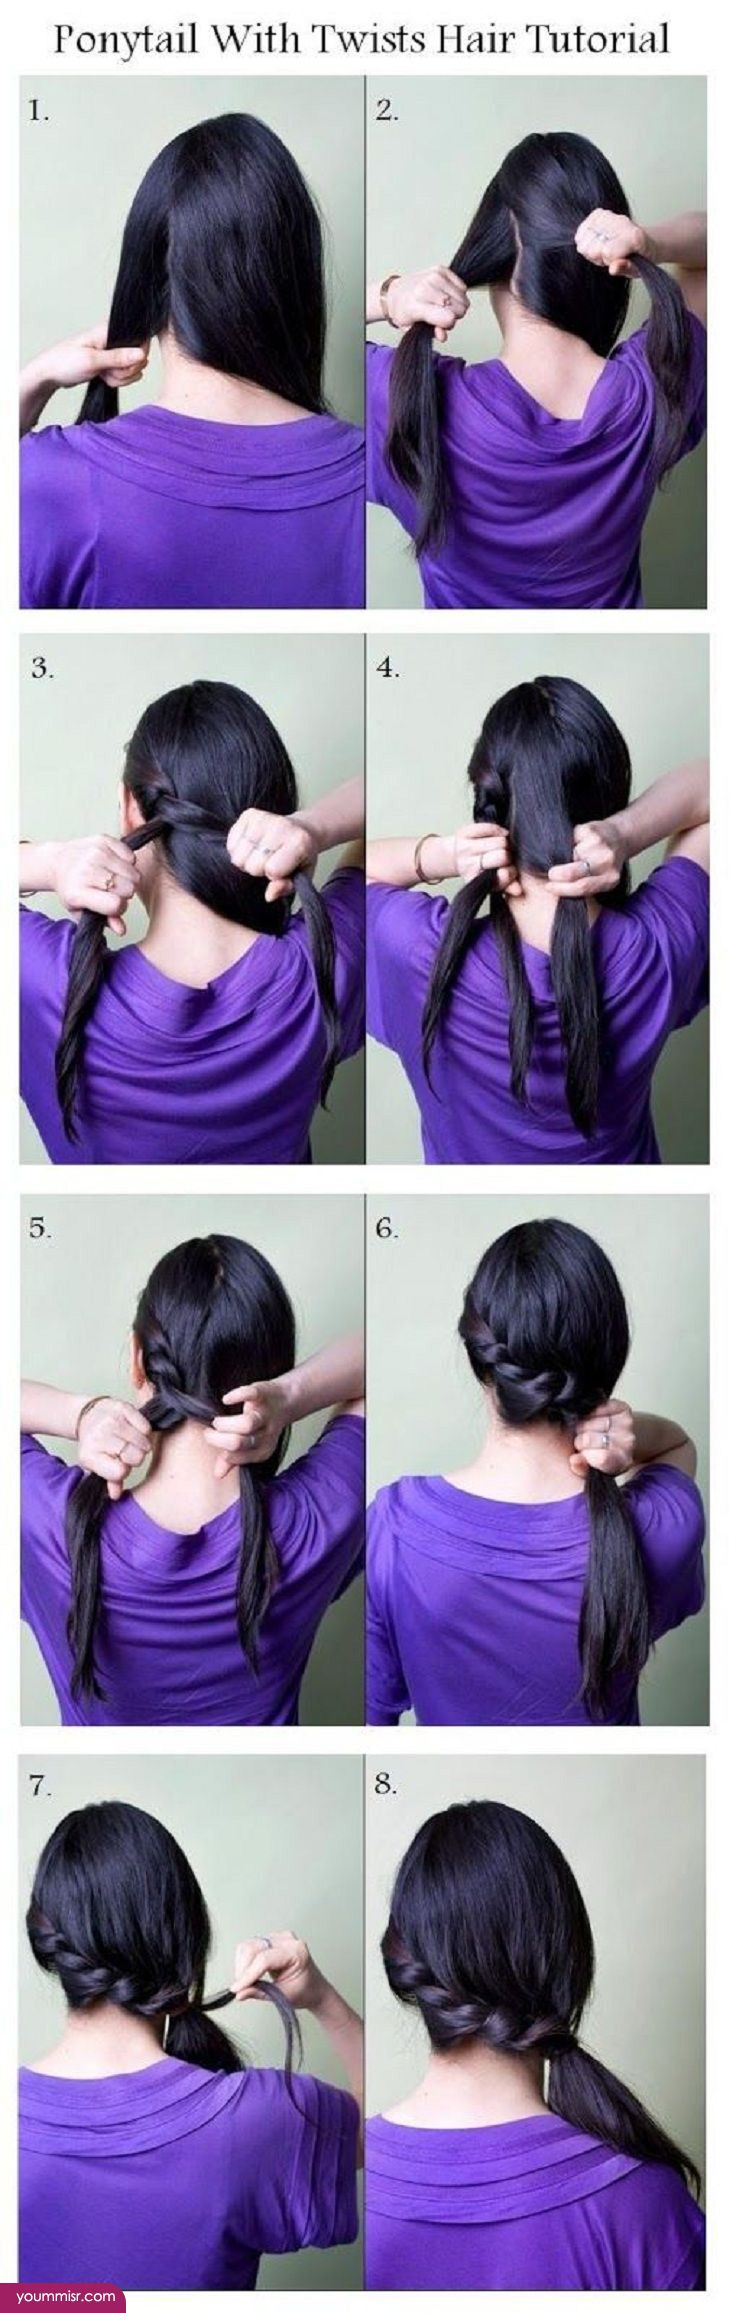 easy prom hairstyles 2015 2016 by step YouTube http://www.yoummisr.com/easy-prom-hairstyles-2015-2016-step-youtube/